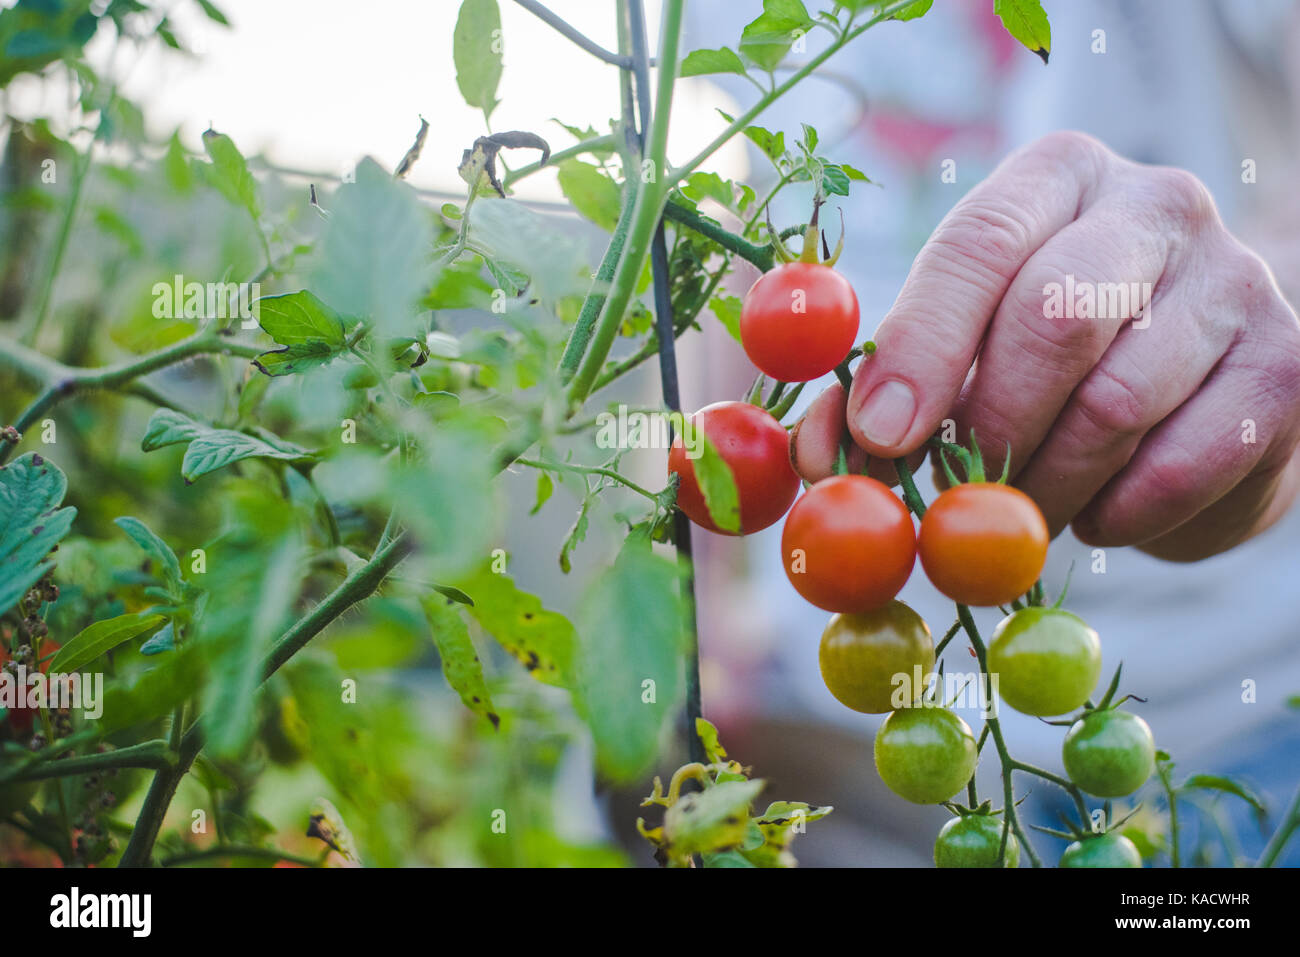 Man's hands holding a bunch of  fresh, red cherry tomatoes. - Stock Image